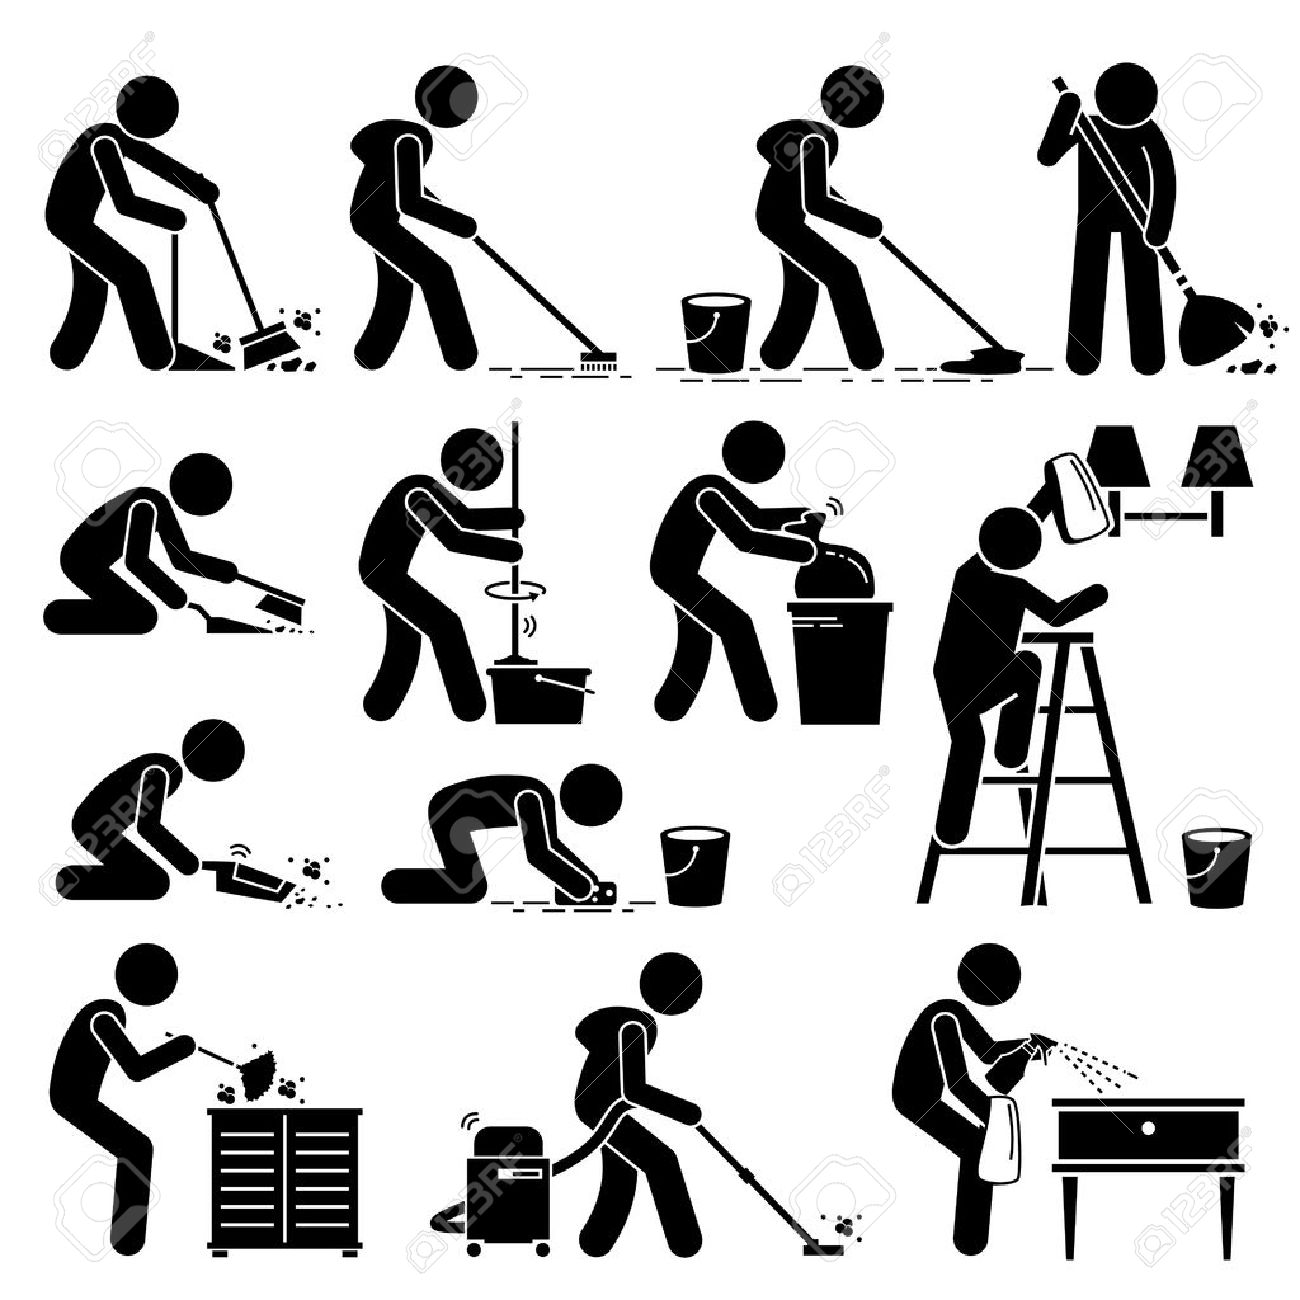 Cleaner Cleaning and Washing House Pictogram - 53802613